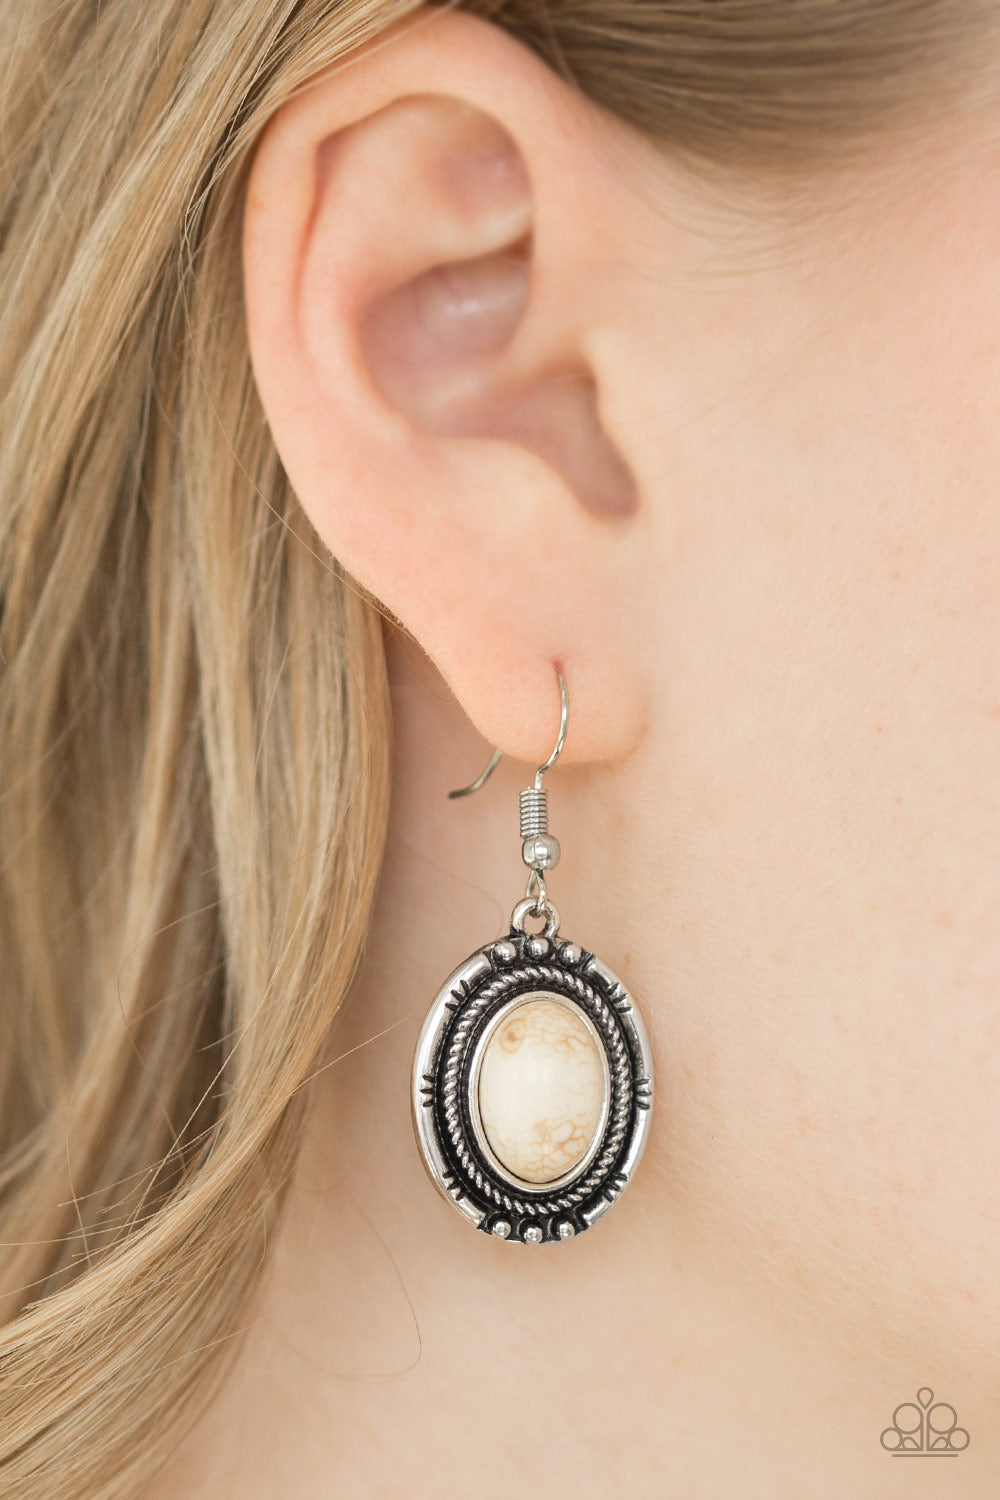 An earthy white stone is pressed into the center of a textured silver frame, creating a seasonal lure. Earring attaches to a standard fishhook fitting.  Sold as one pair of earrings.  Always nickel and lead free.